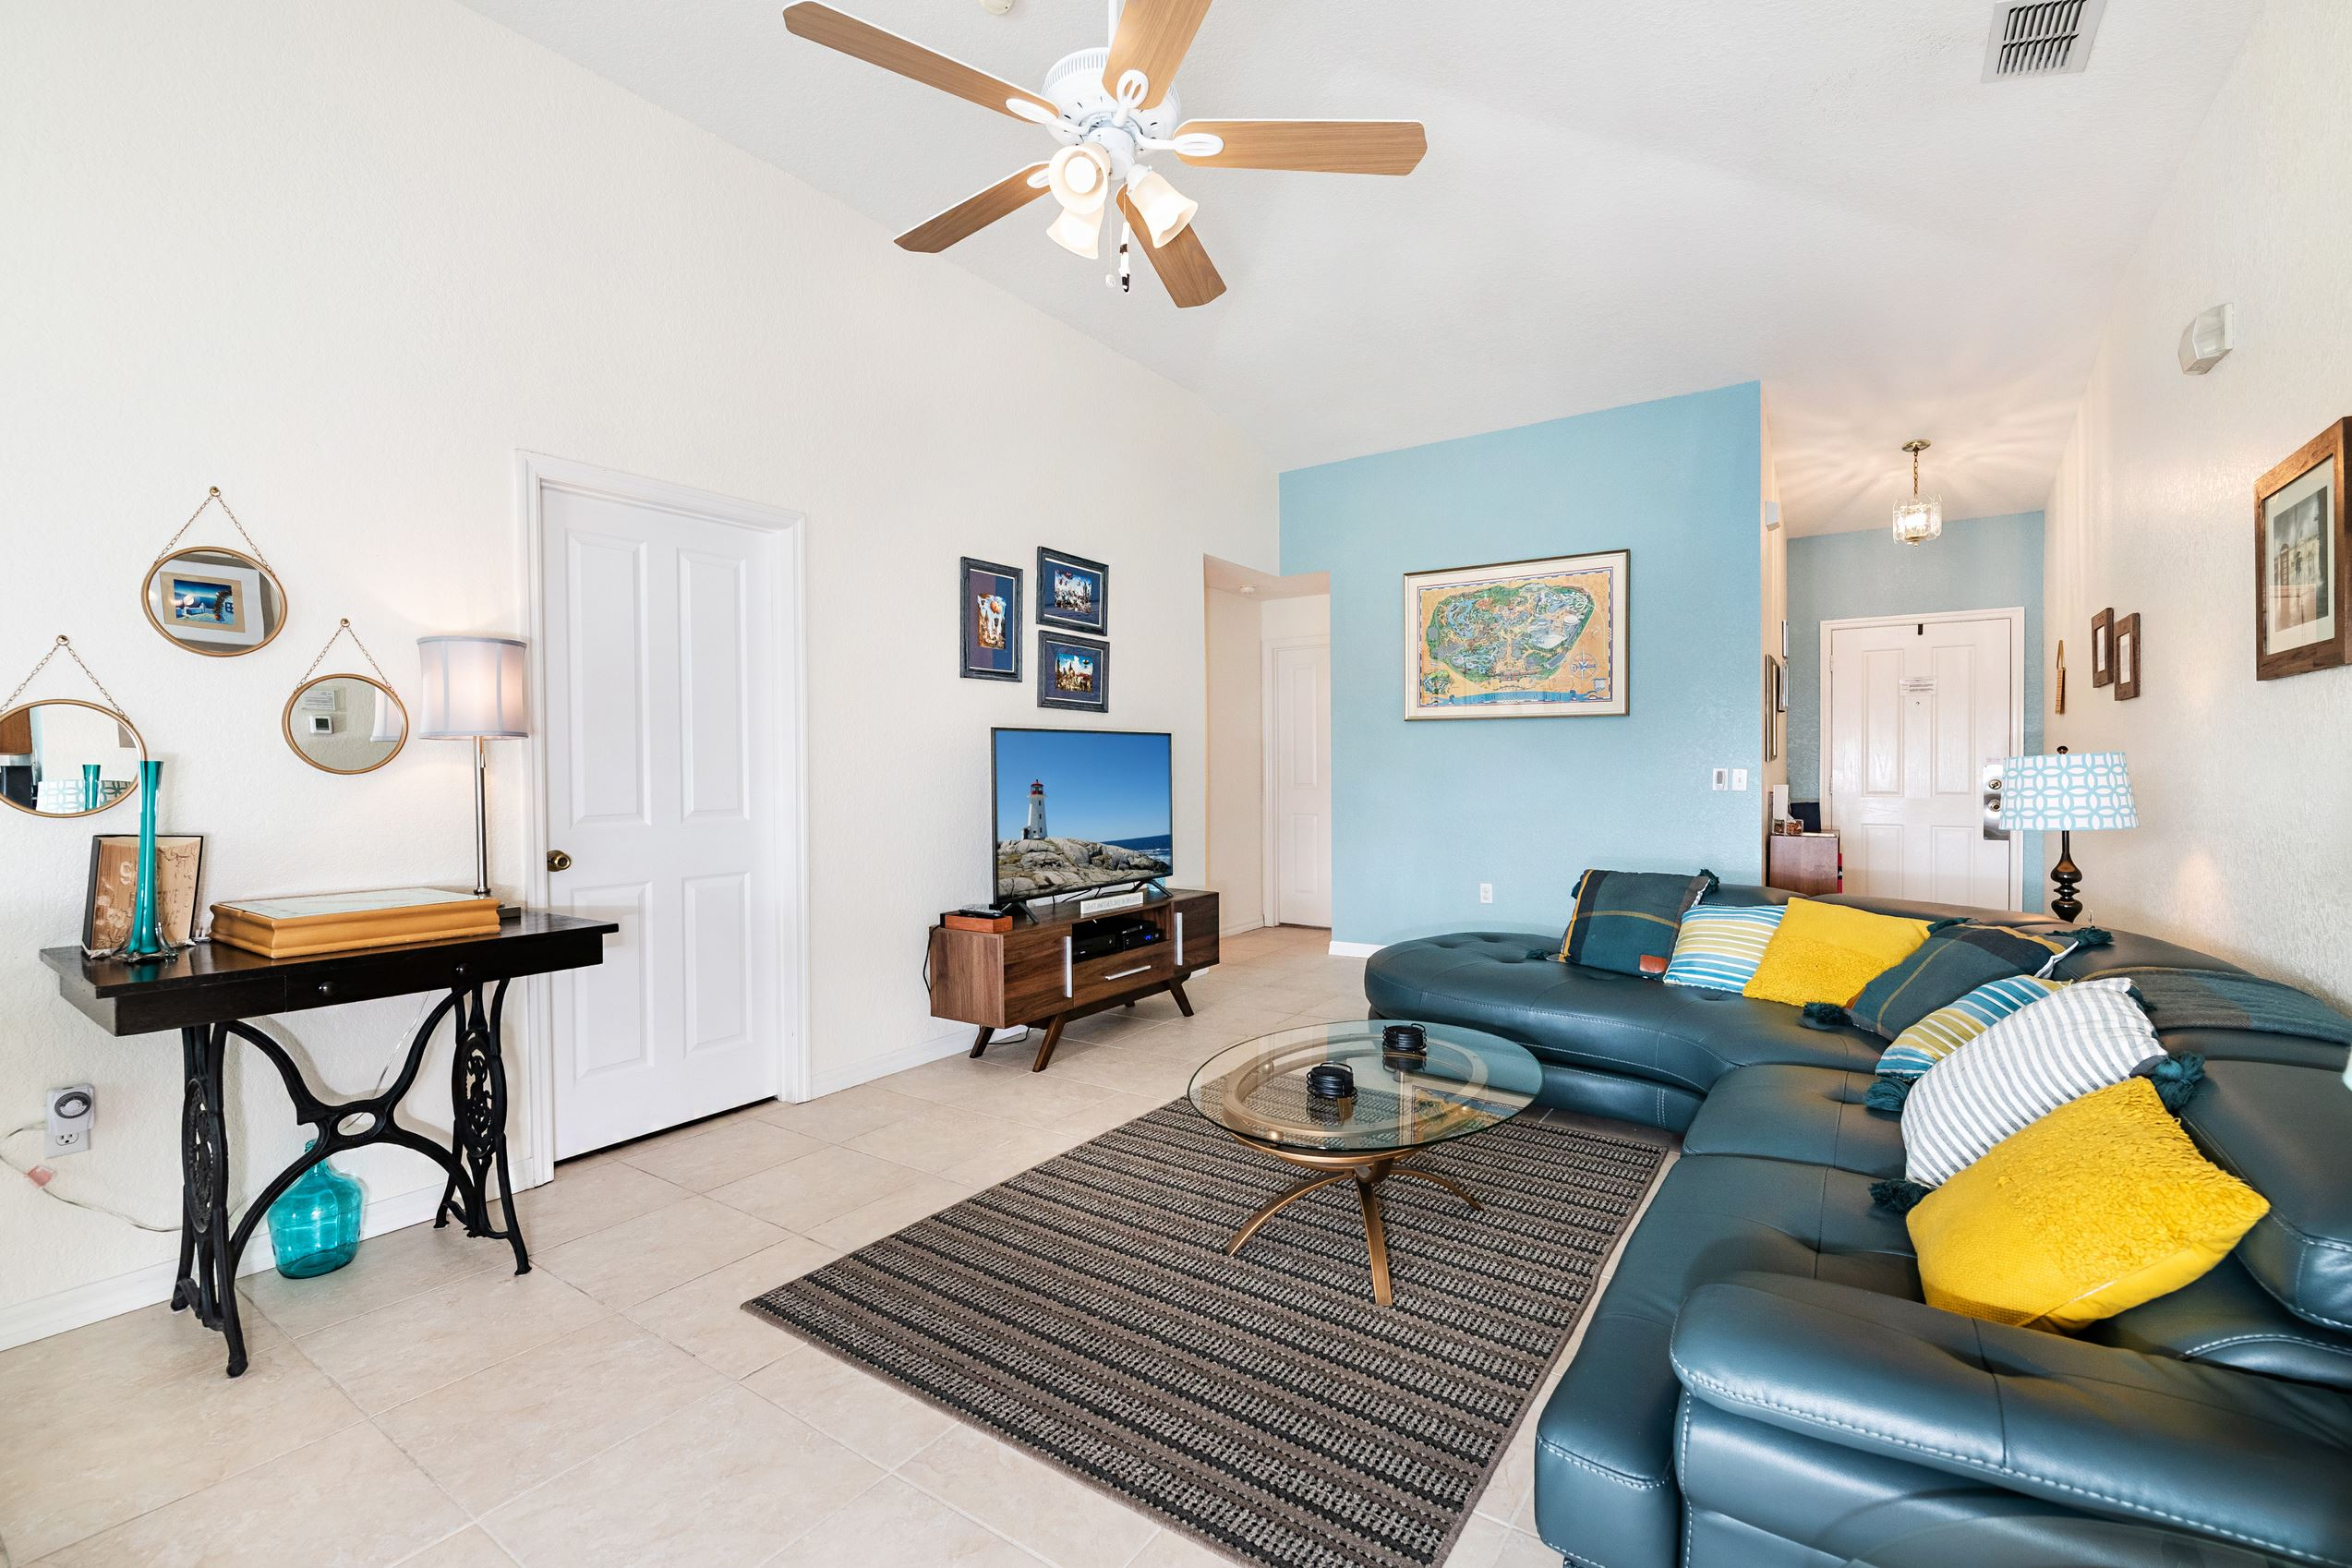 Reserve at Town Center/JD5257-145908